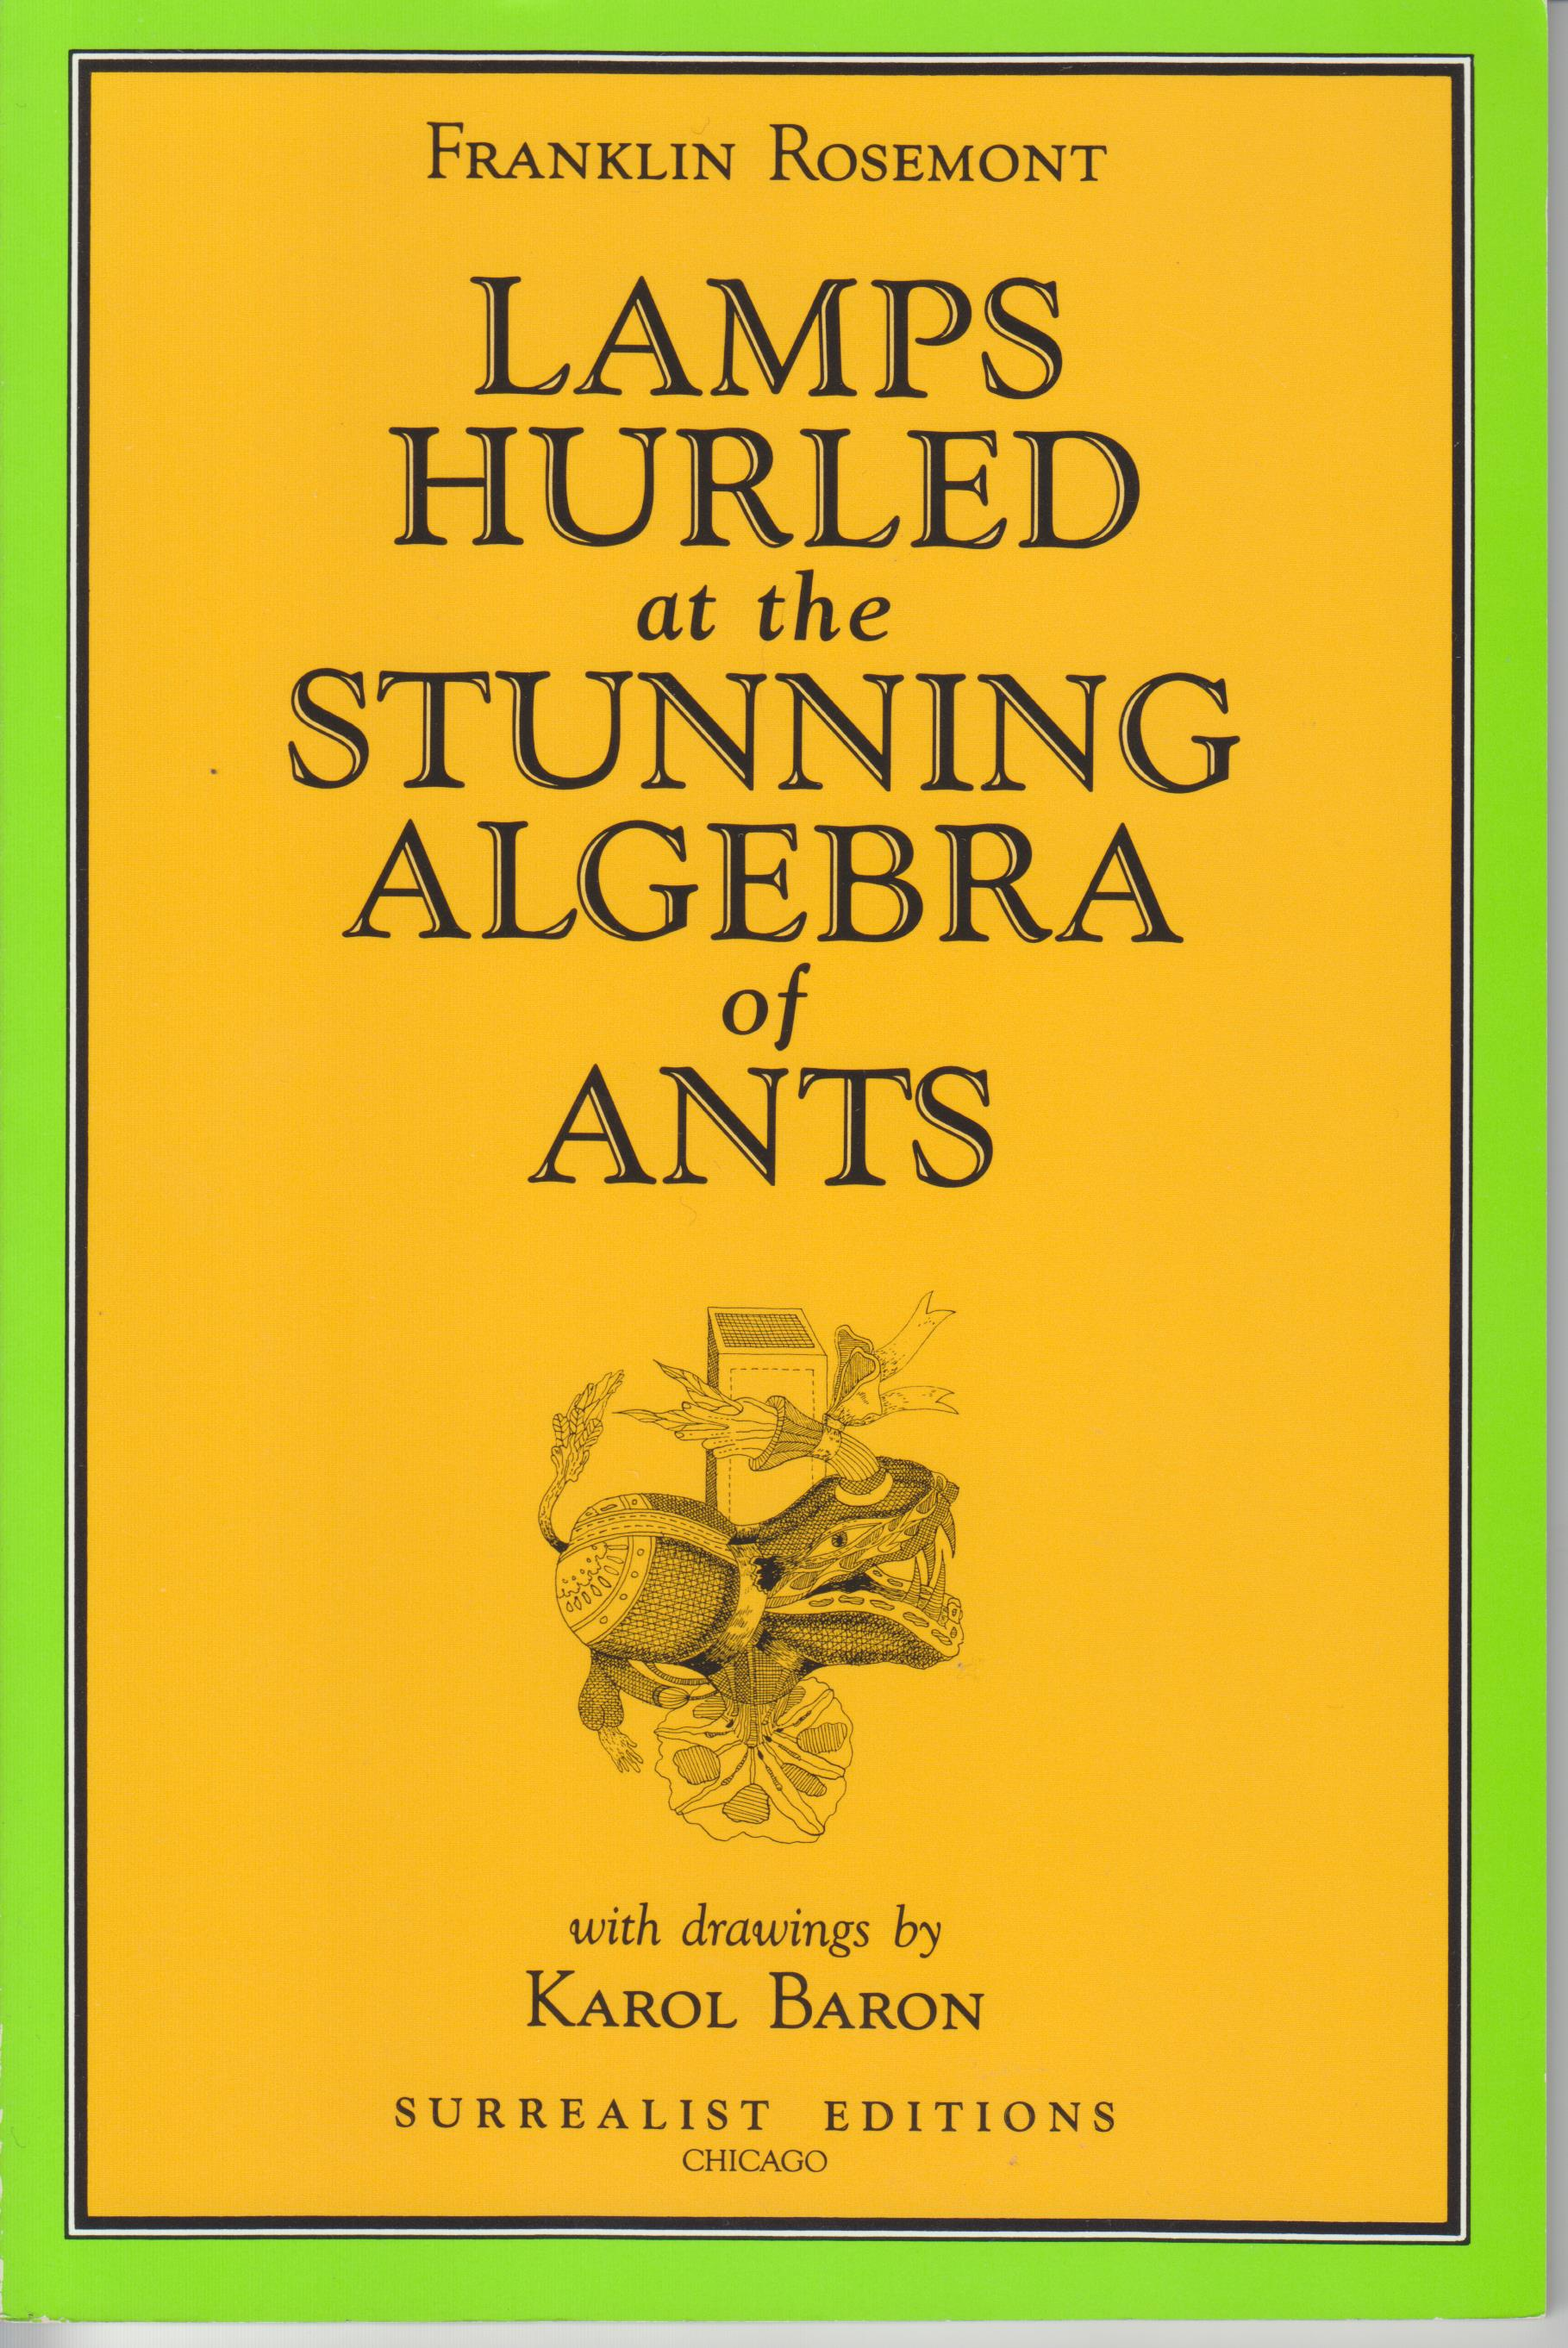 Image for Lamps Hurled at the Stunning Algebra of Ants